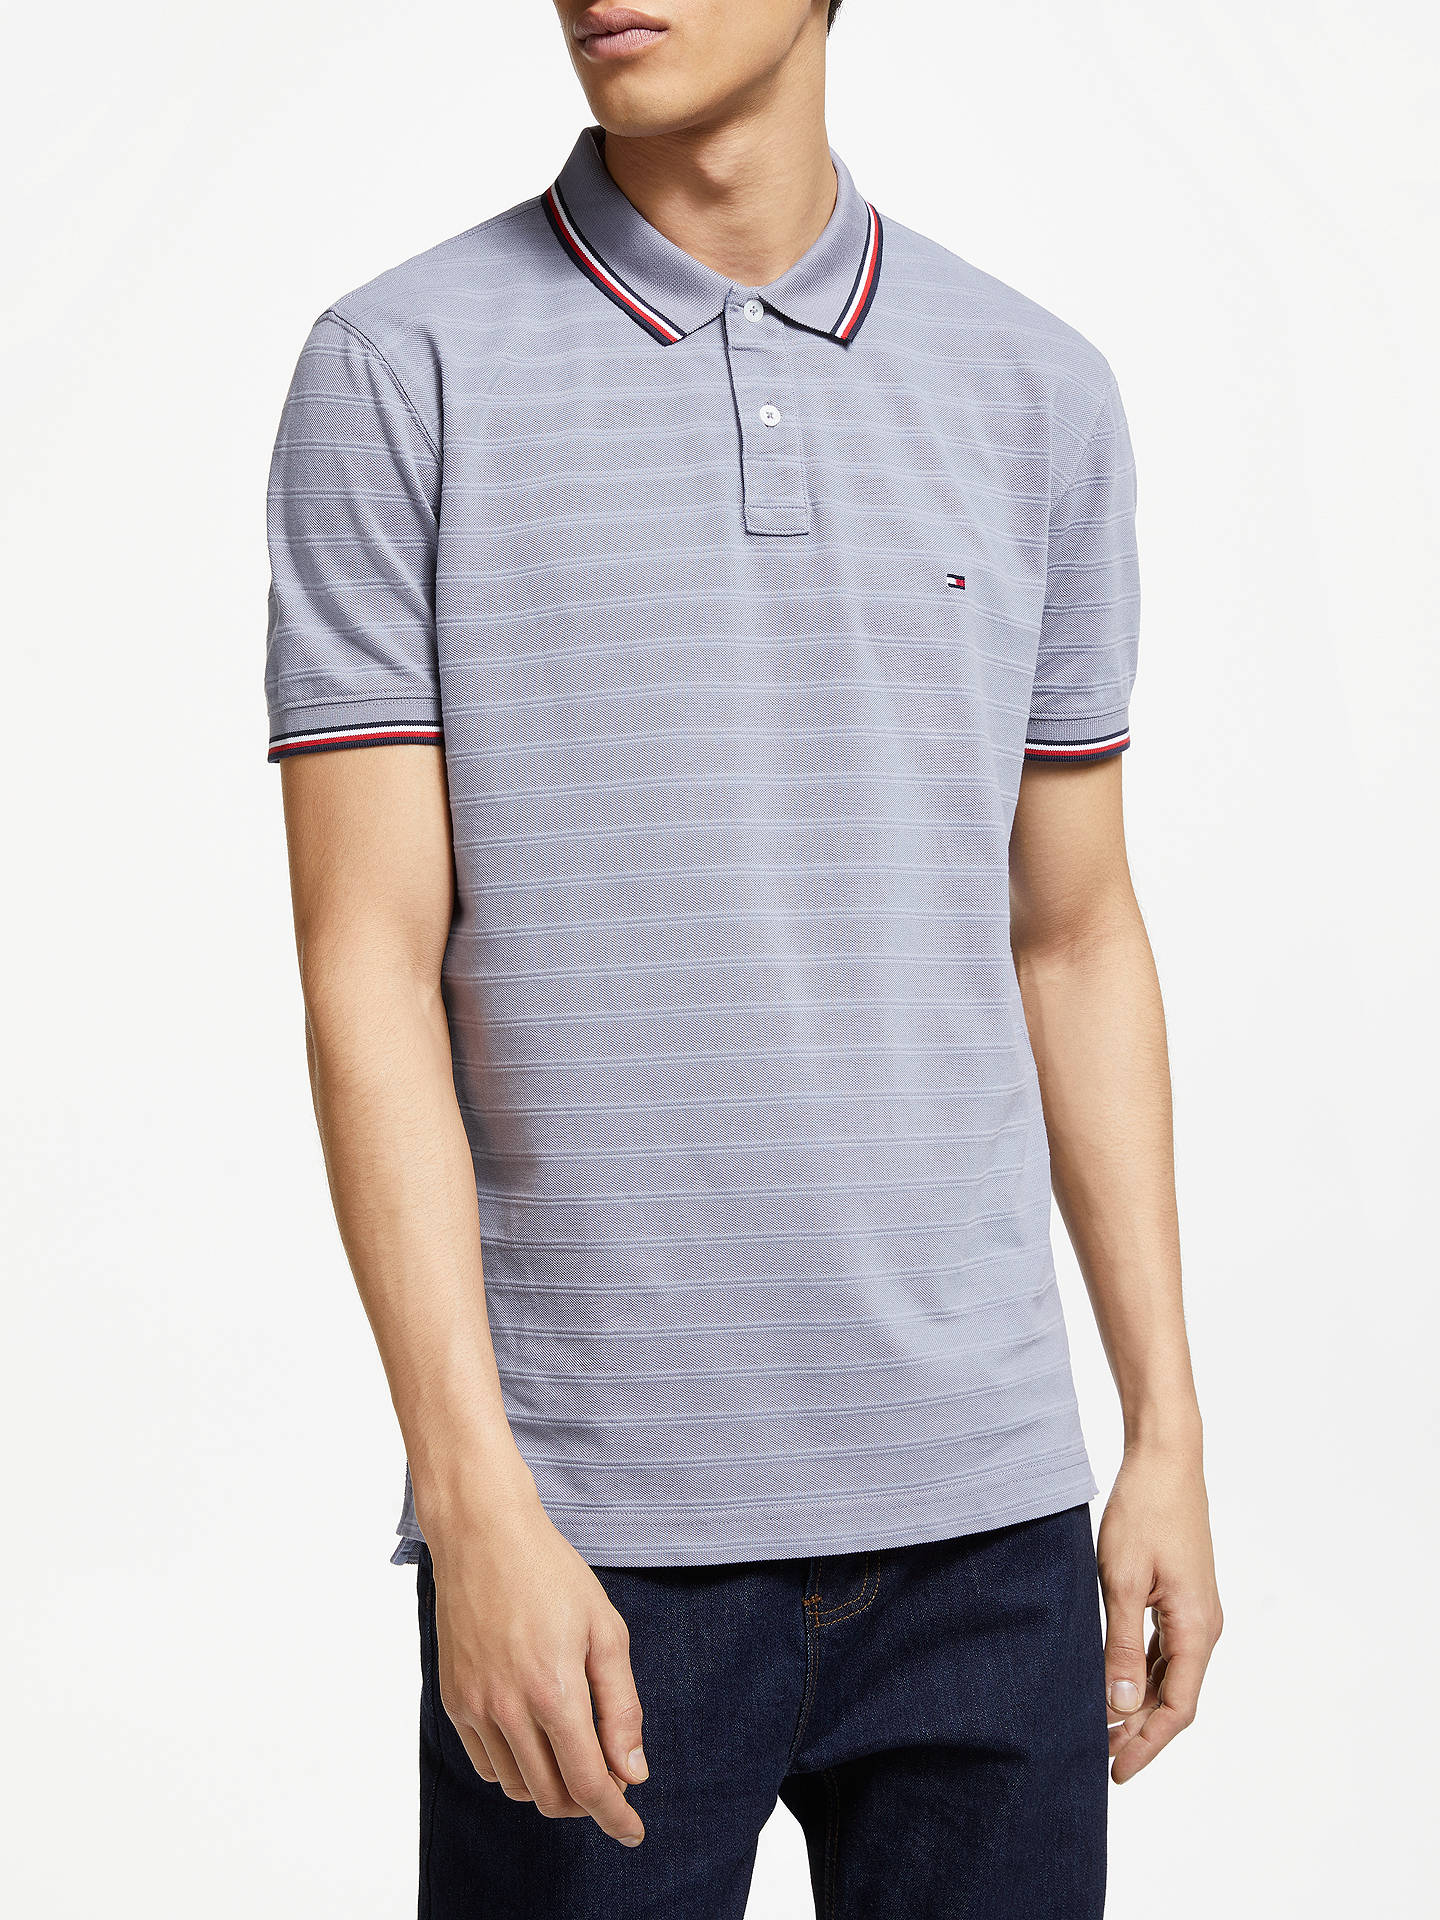 33b8ac00 Buy Tommy Hilfiger Tonal Texture Polo Shirt, Grey, S Online at  johnlewis.com ...